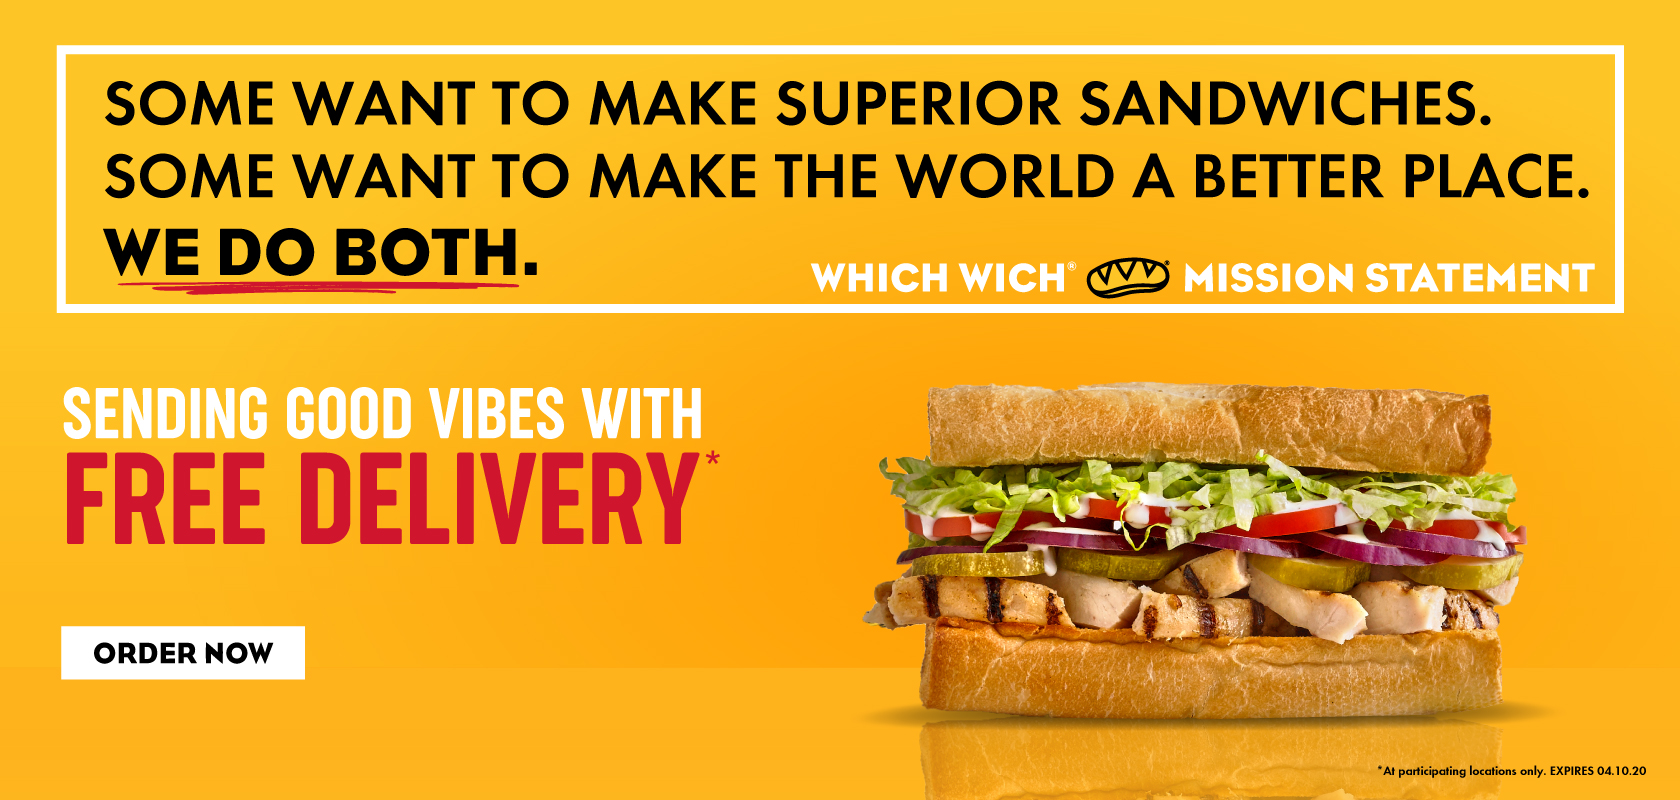 Free Delivery and Good Vibes!